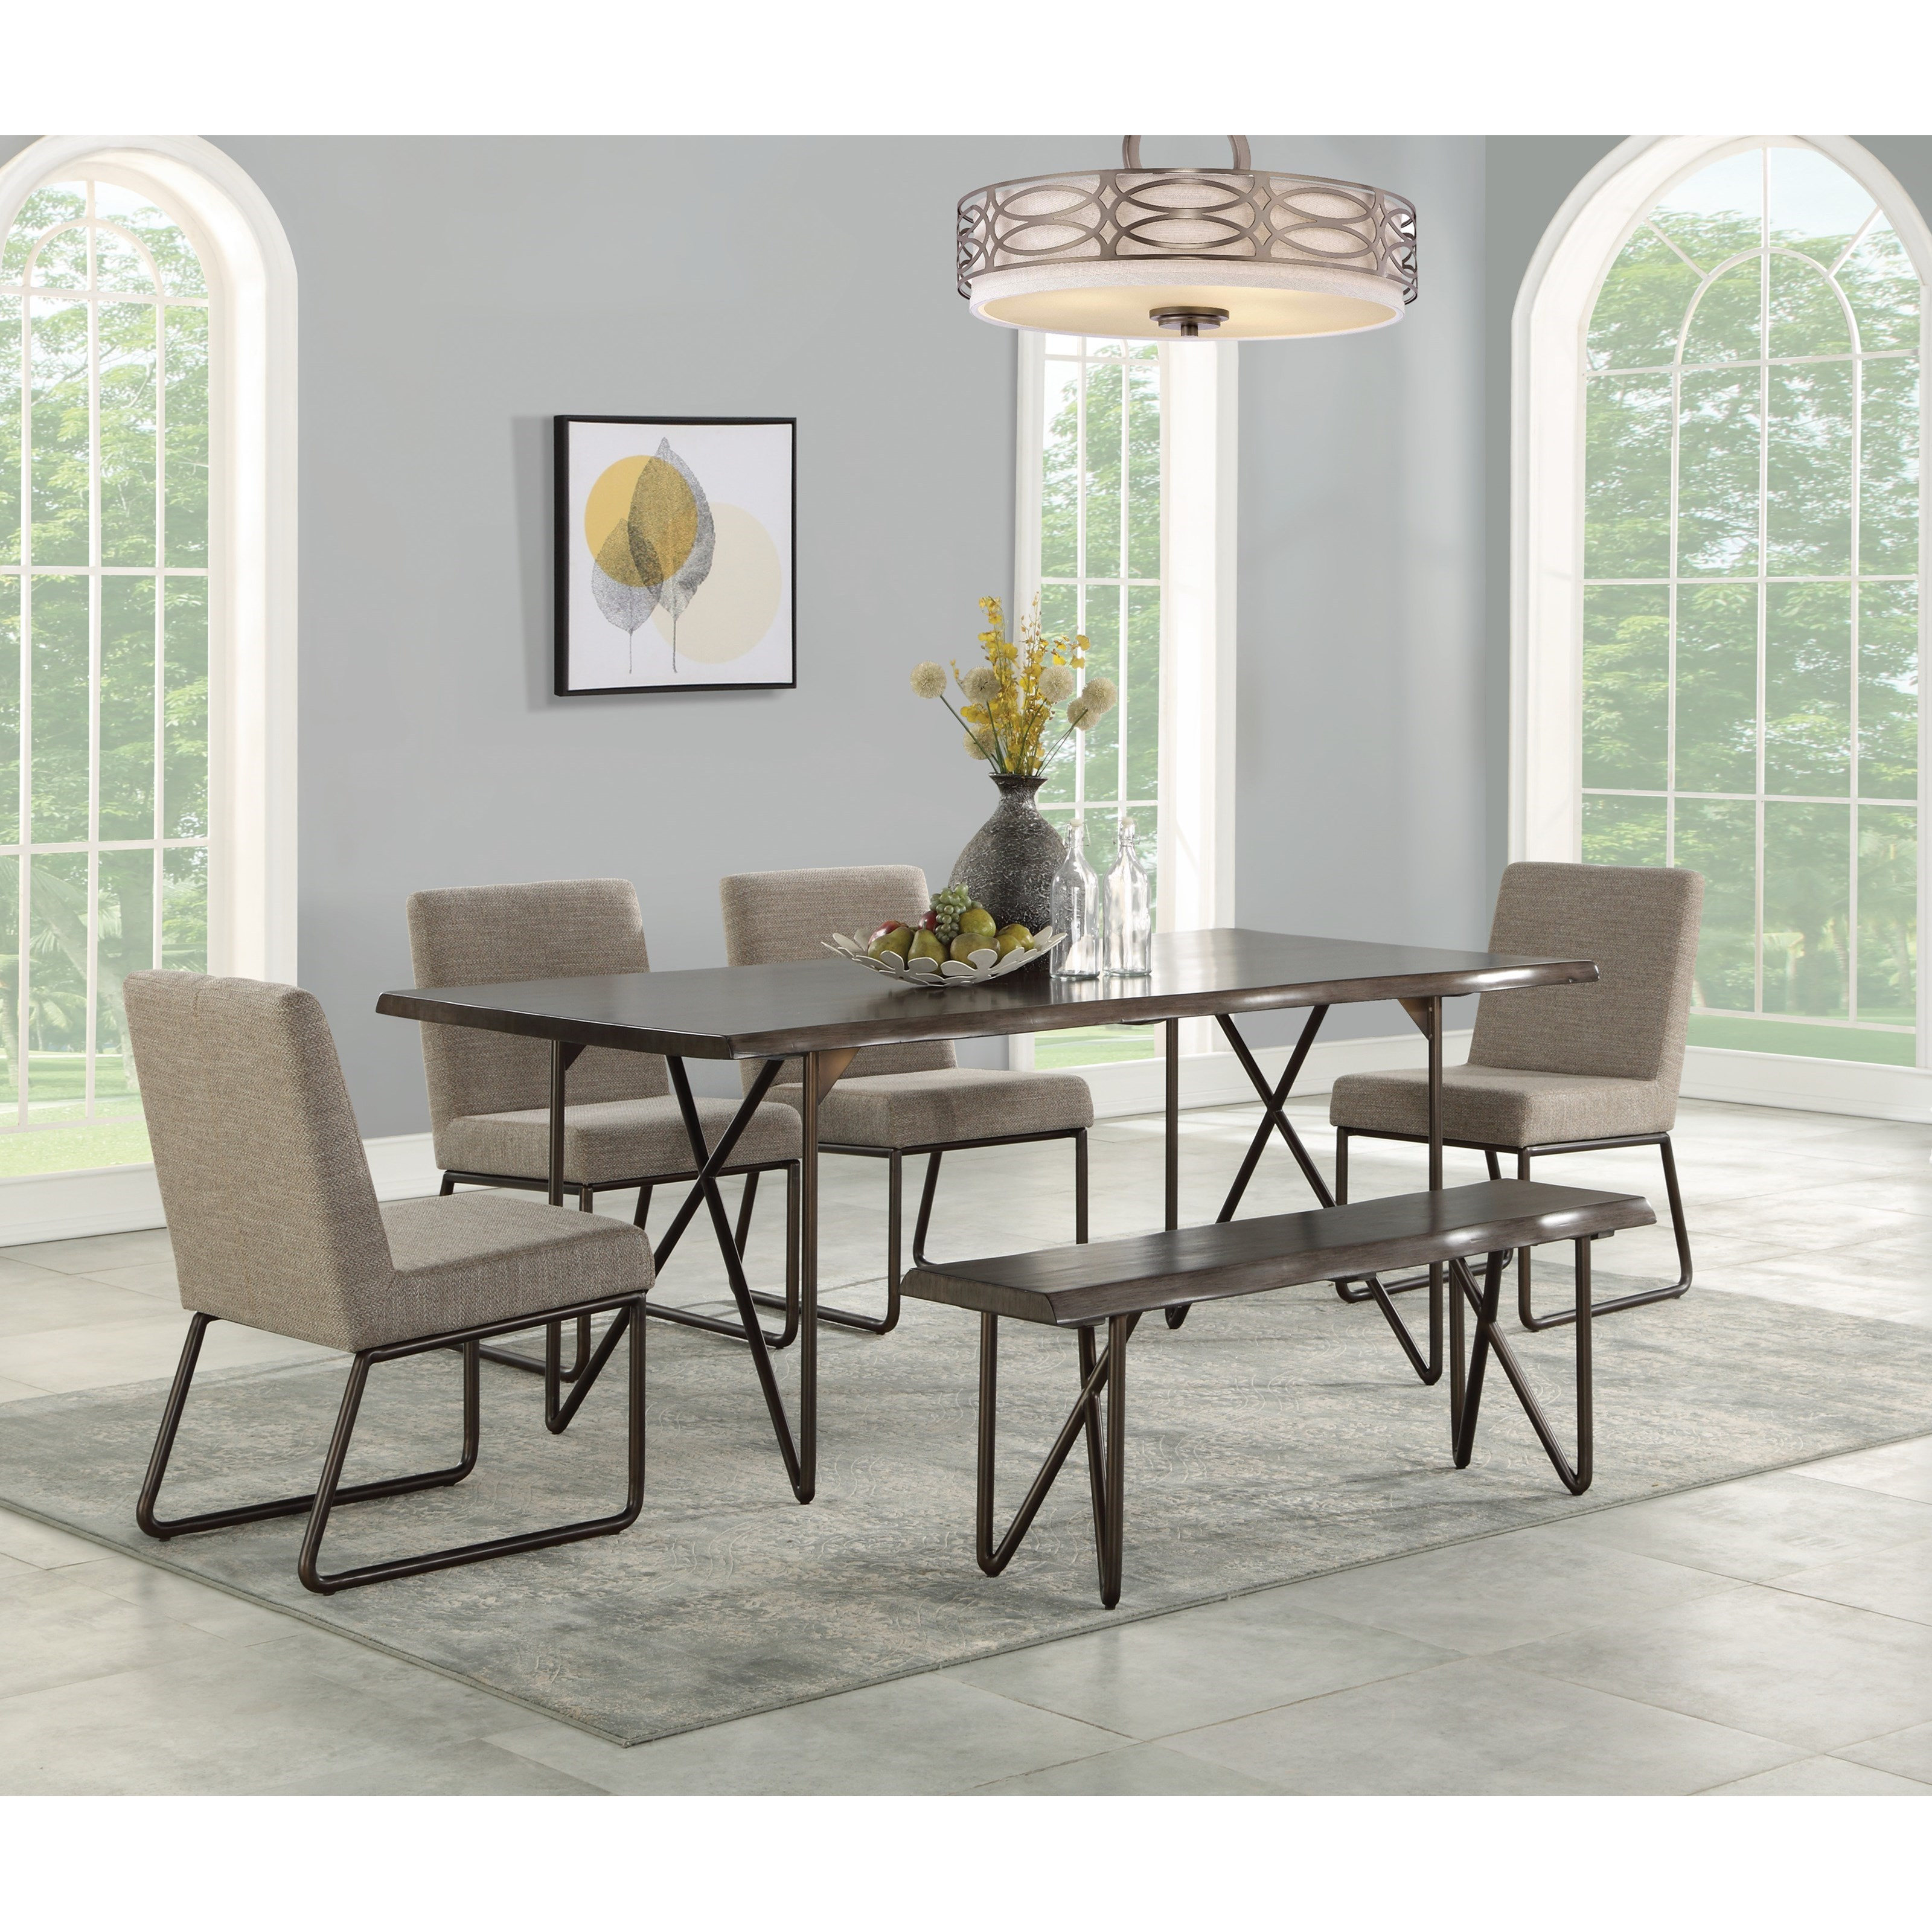 Wynwood A Flexsteel Company Shadow Mid Century Modern 6 Piece Table Set With Bench Conlin S Furniture Table Chair Set With Bench